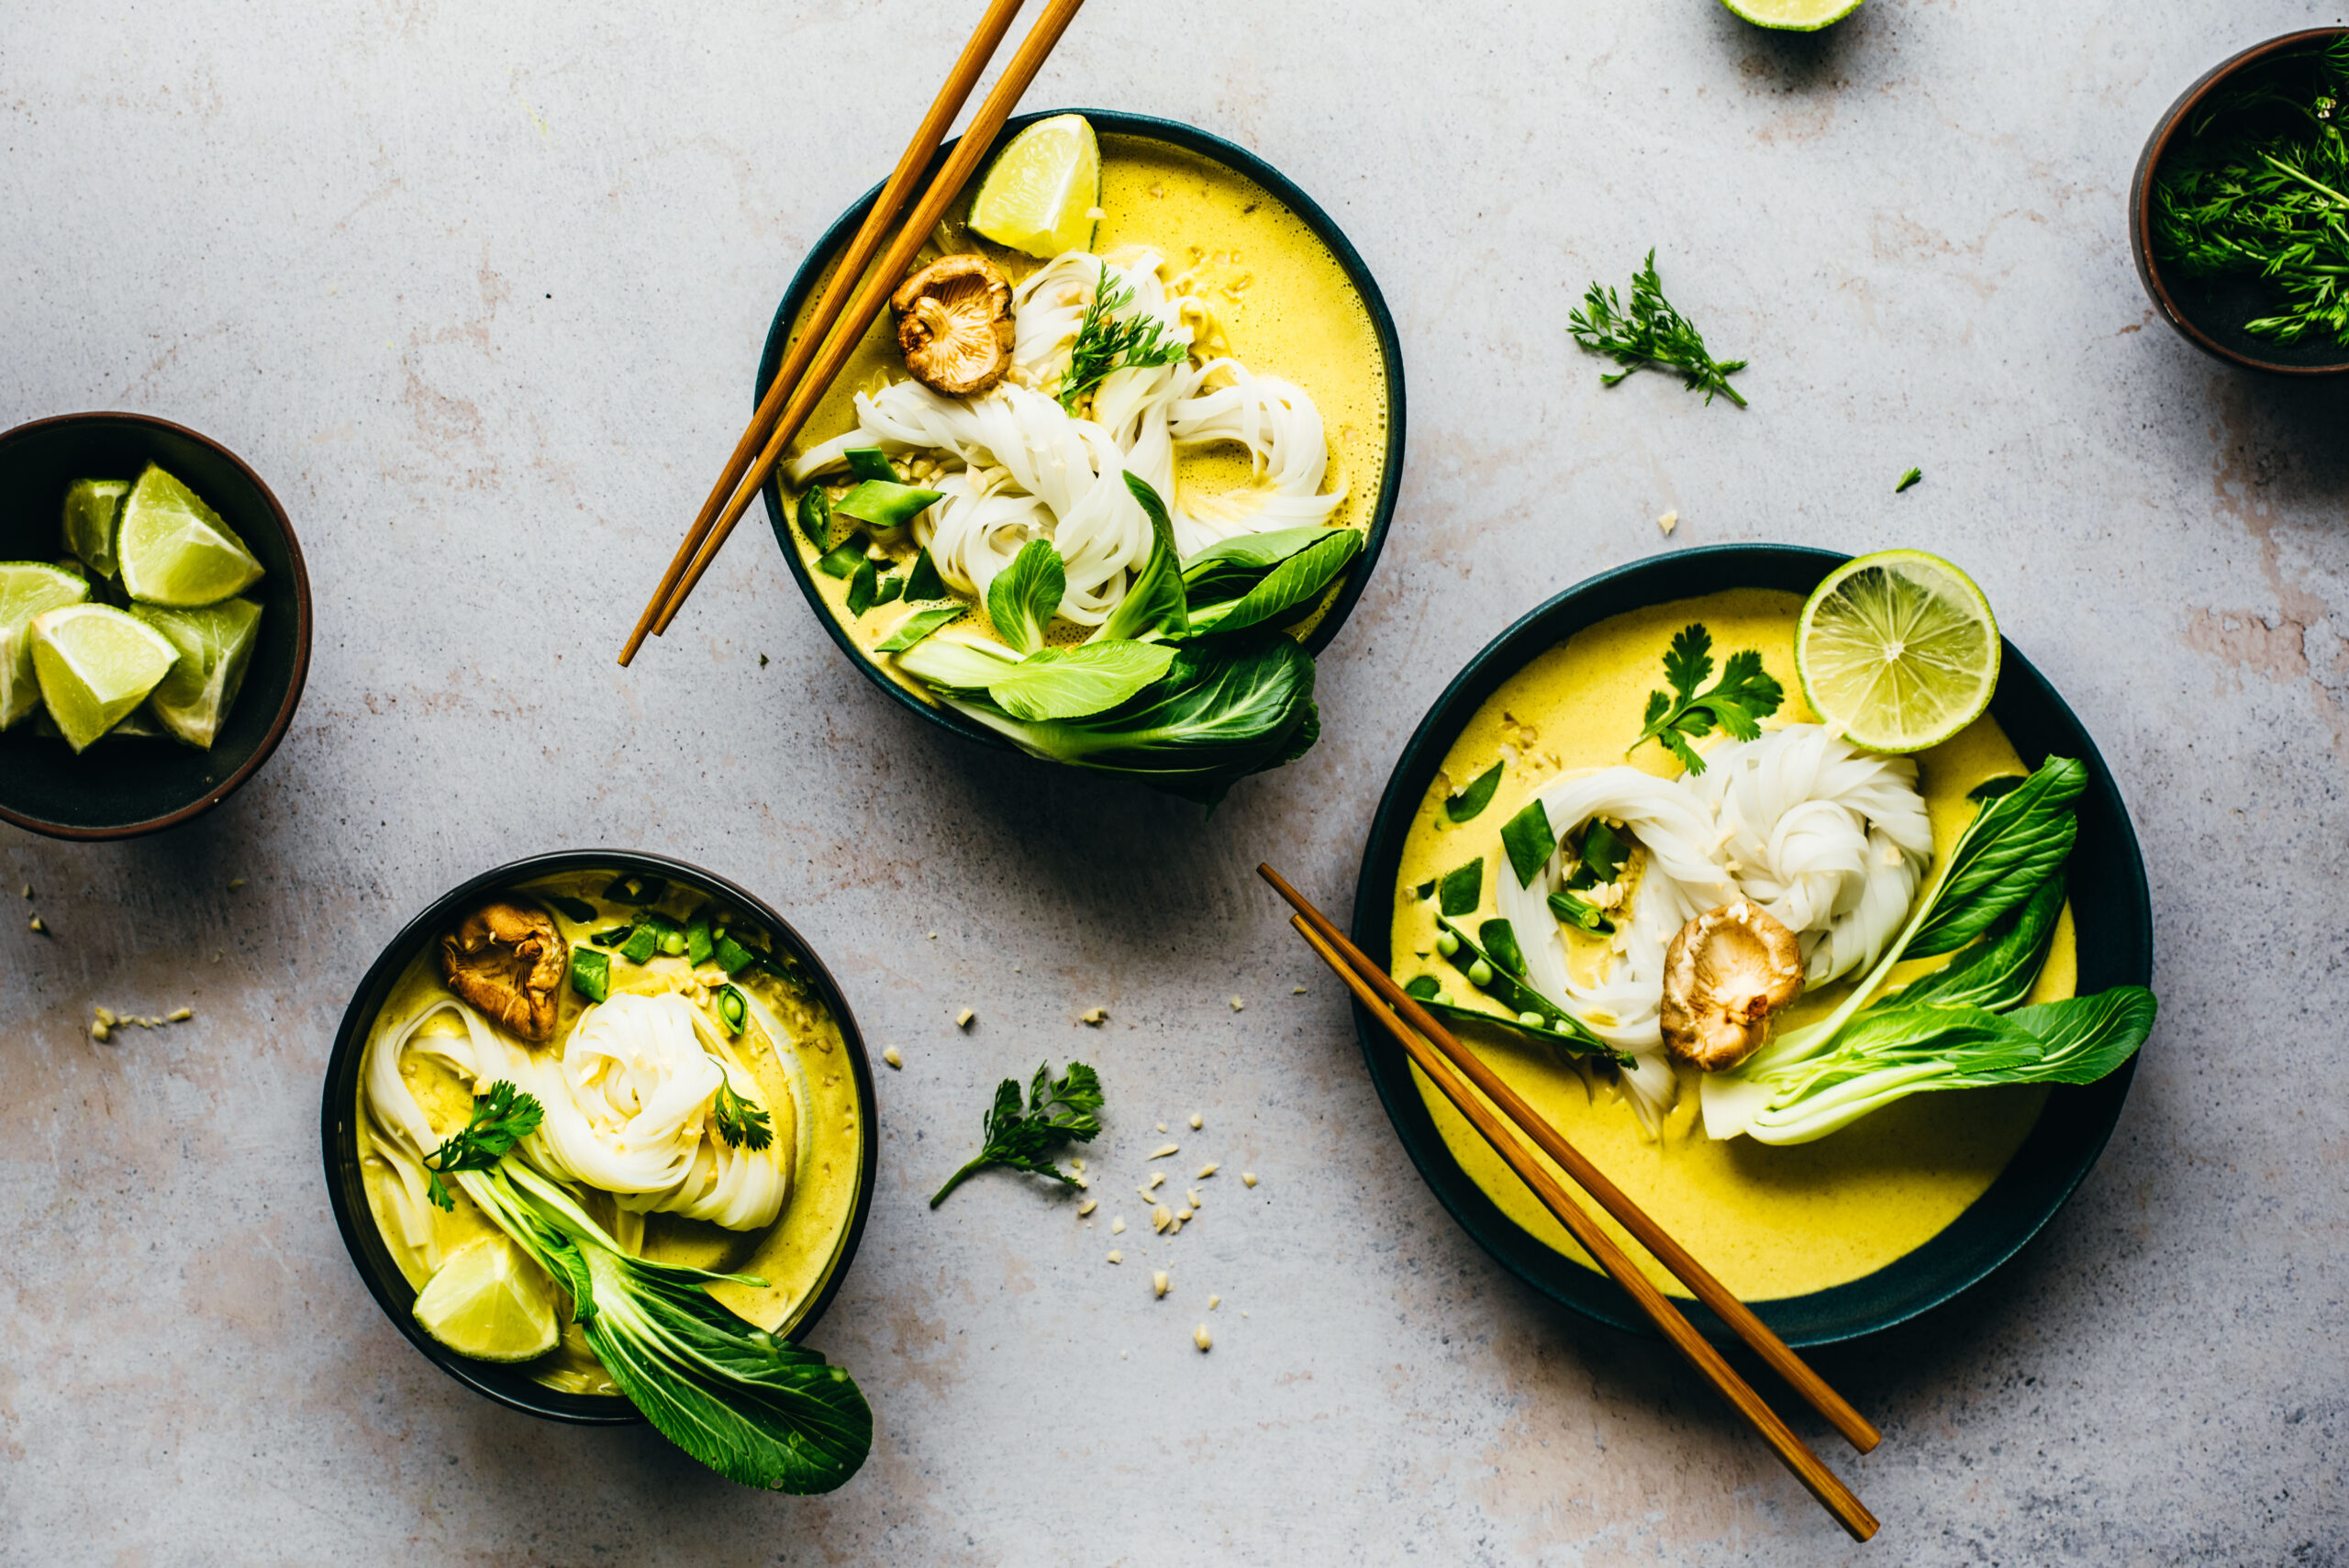 Curry Noodle Soup with green veggies